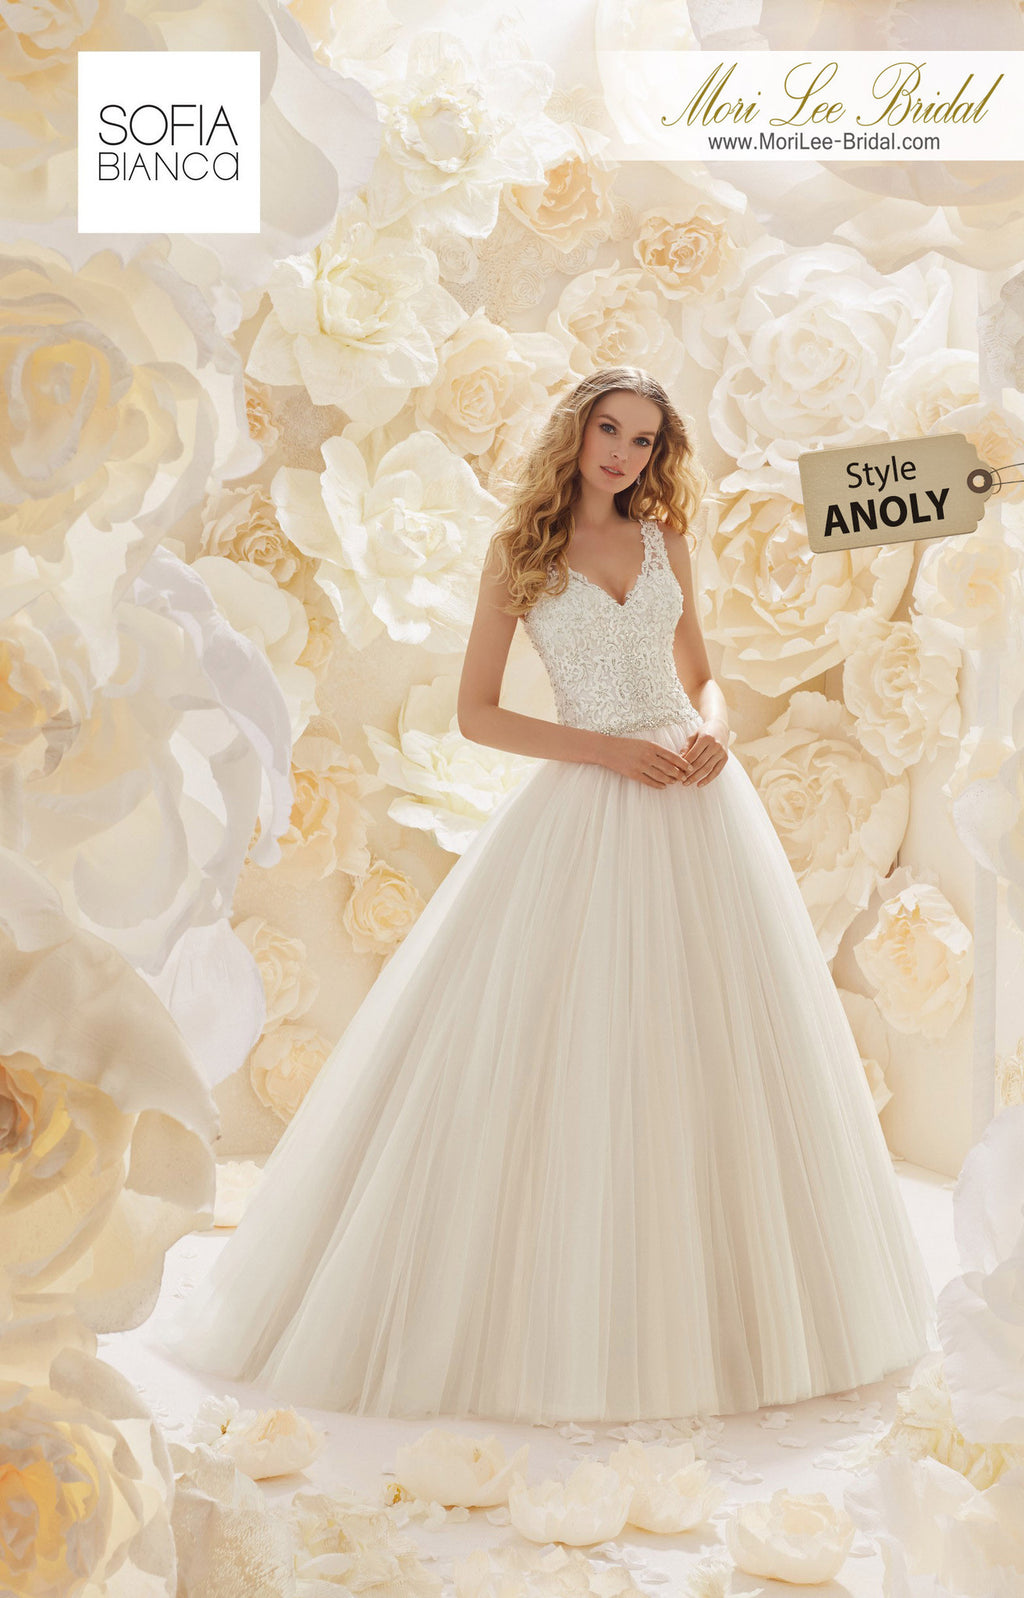 ANOLY - Mori Lee Bridal